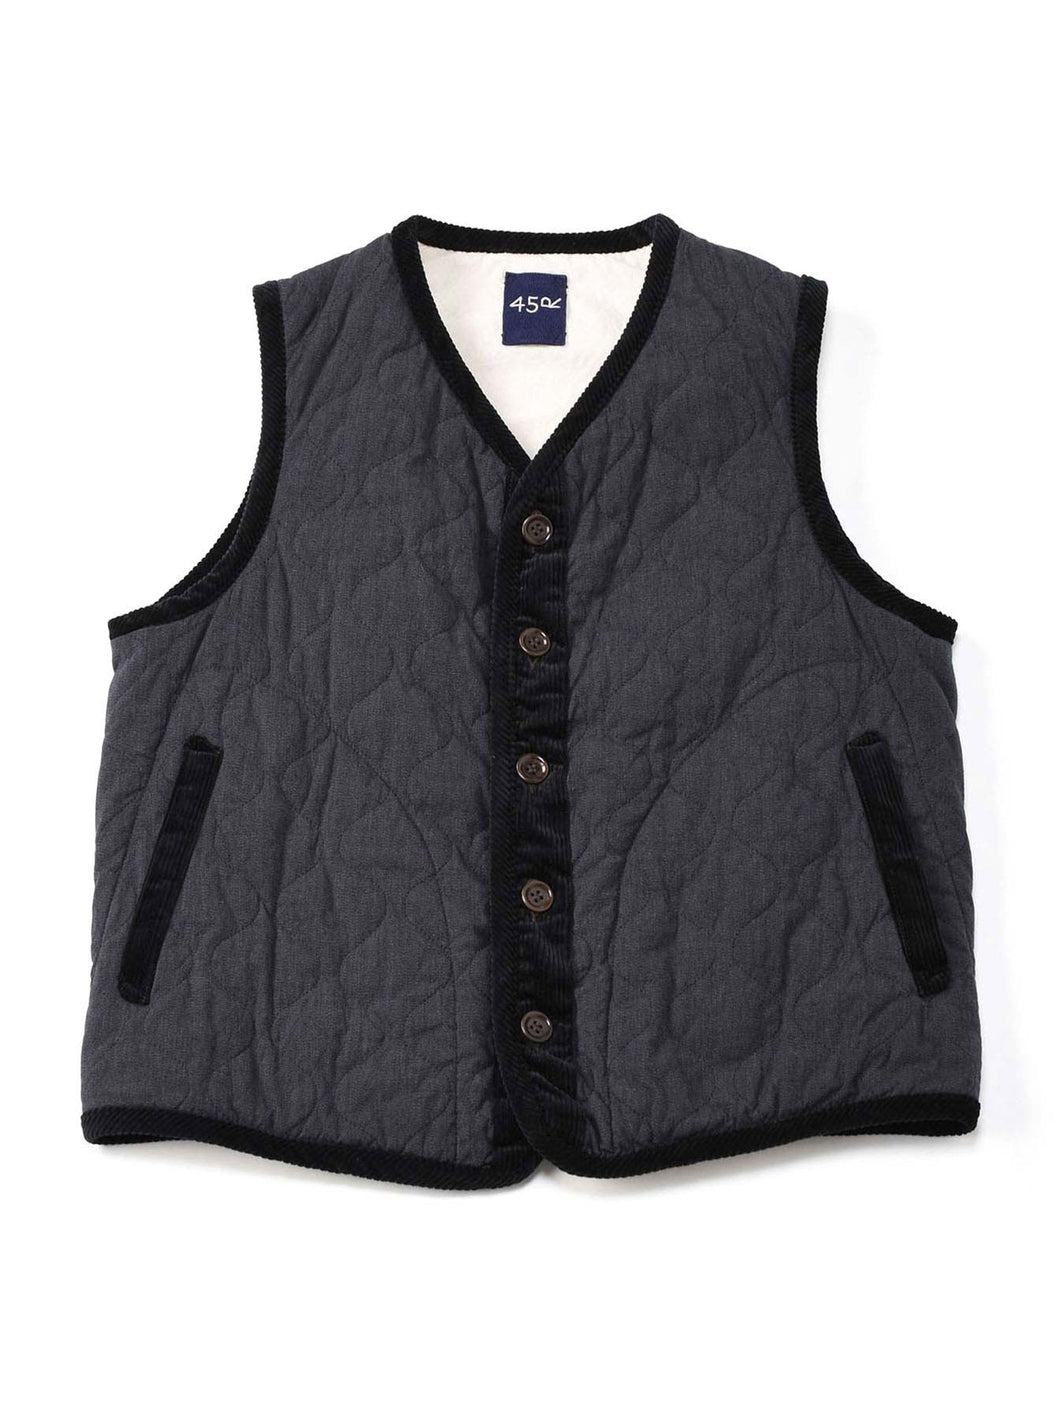 Yorimoku Hira Cotton Quilt 908 Vest in charcoal